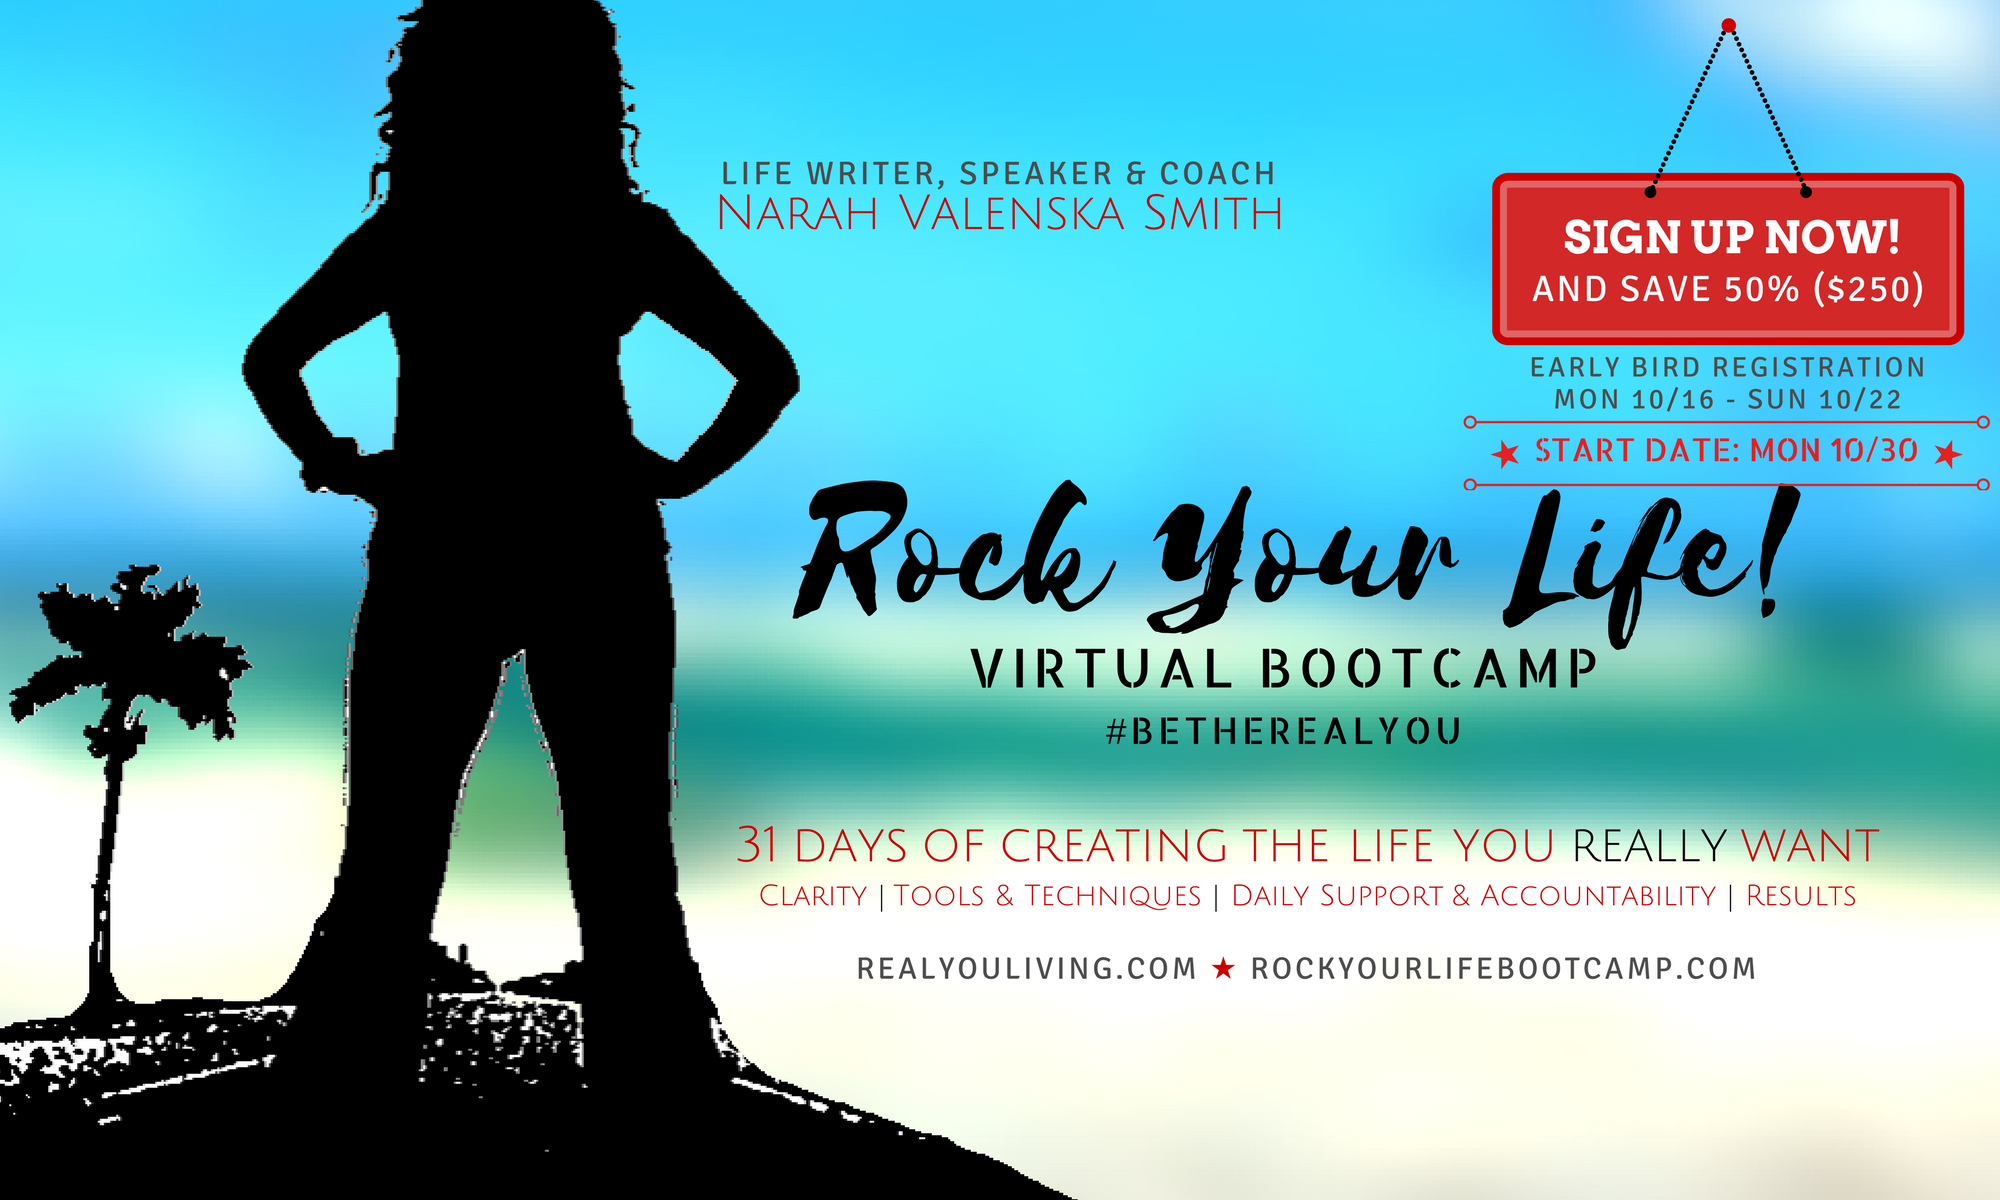 Rock Your Life Virtual Bootcamp